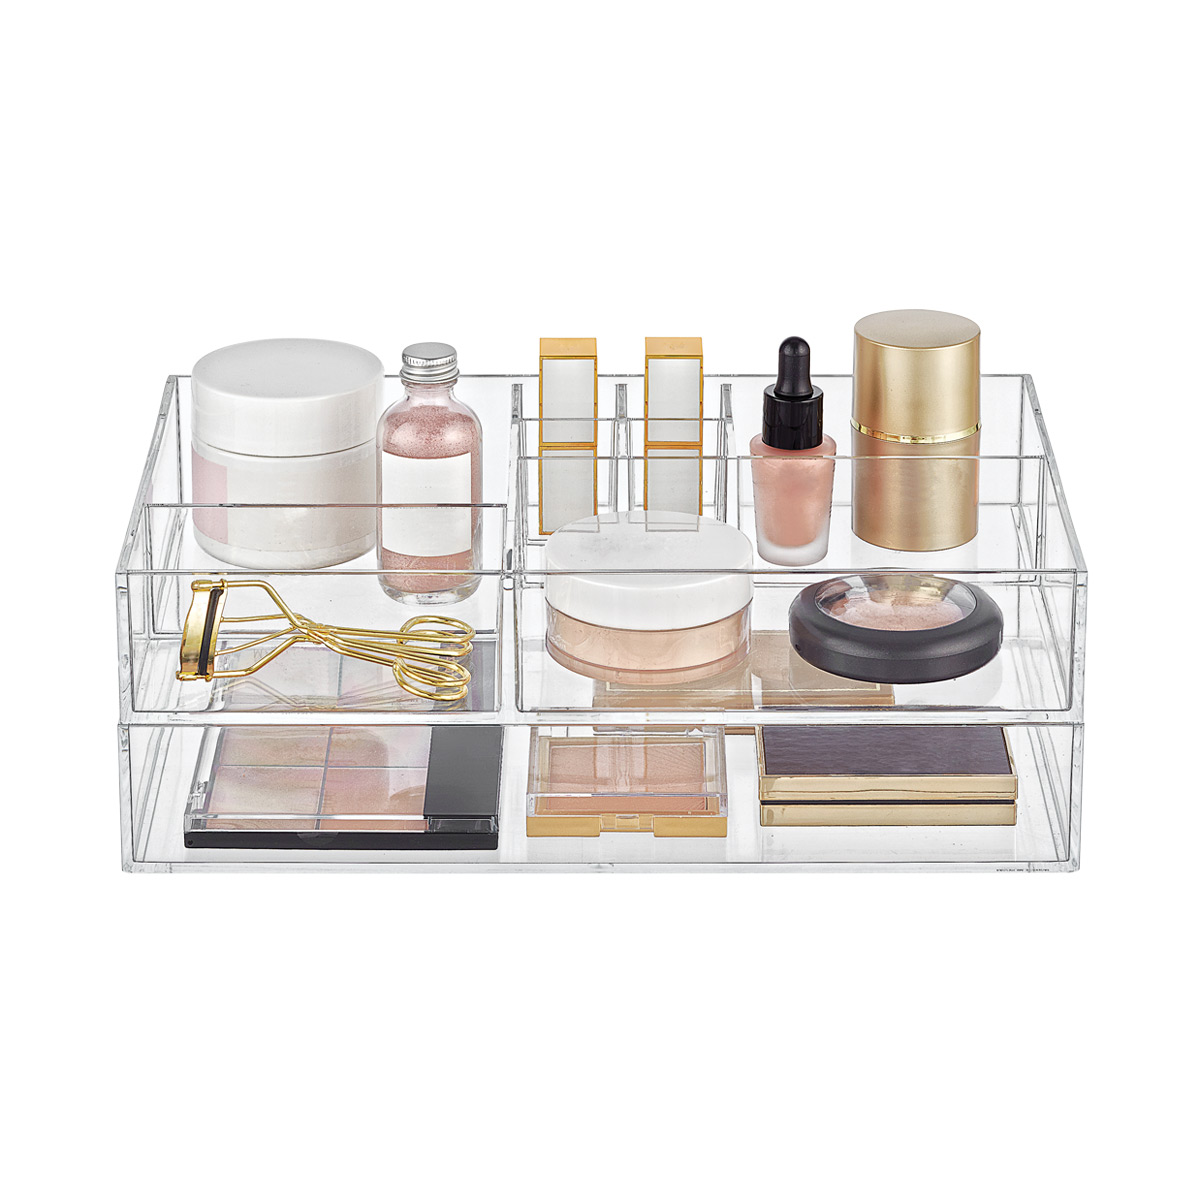 Clear Acrylic Makeup & Skin Care Storage Starter Kit